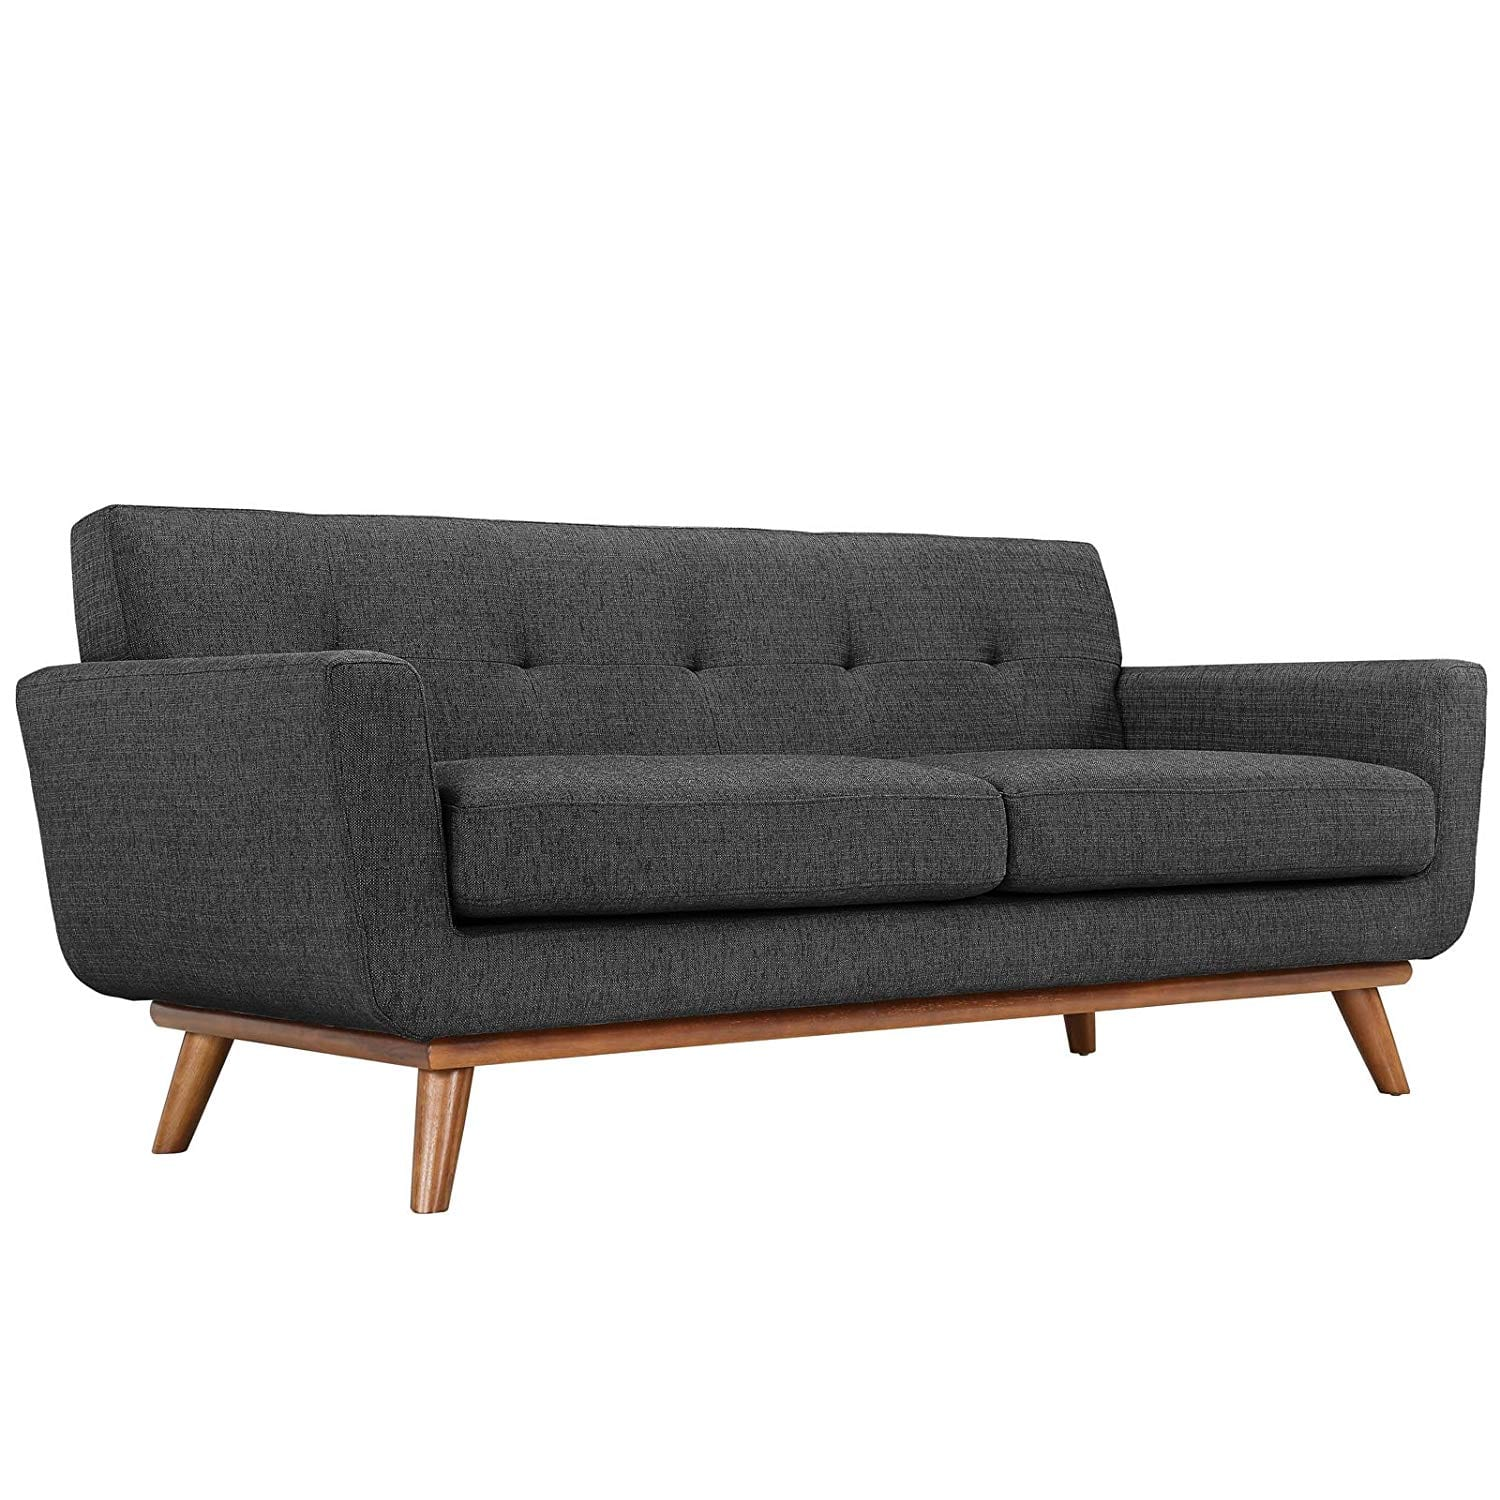 Modway Empress Modern Mid-Century Upholstered Leather